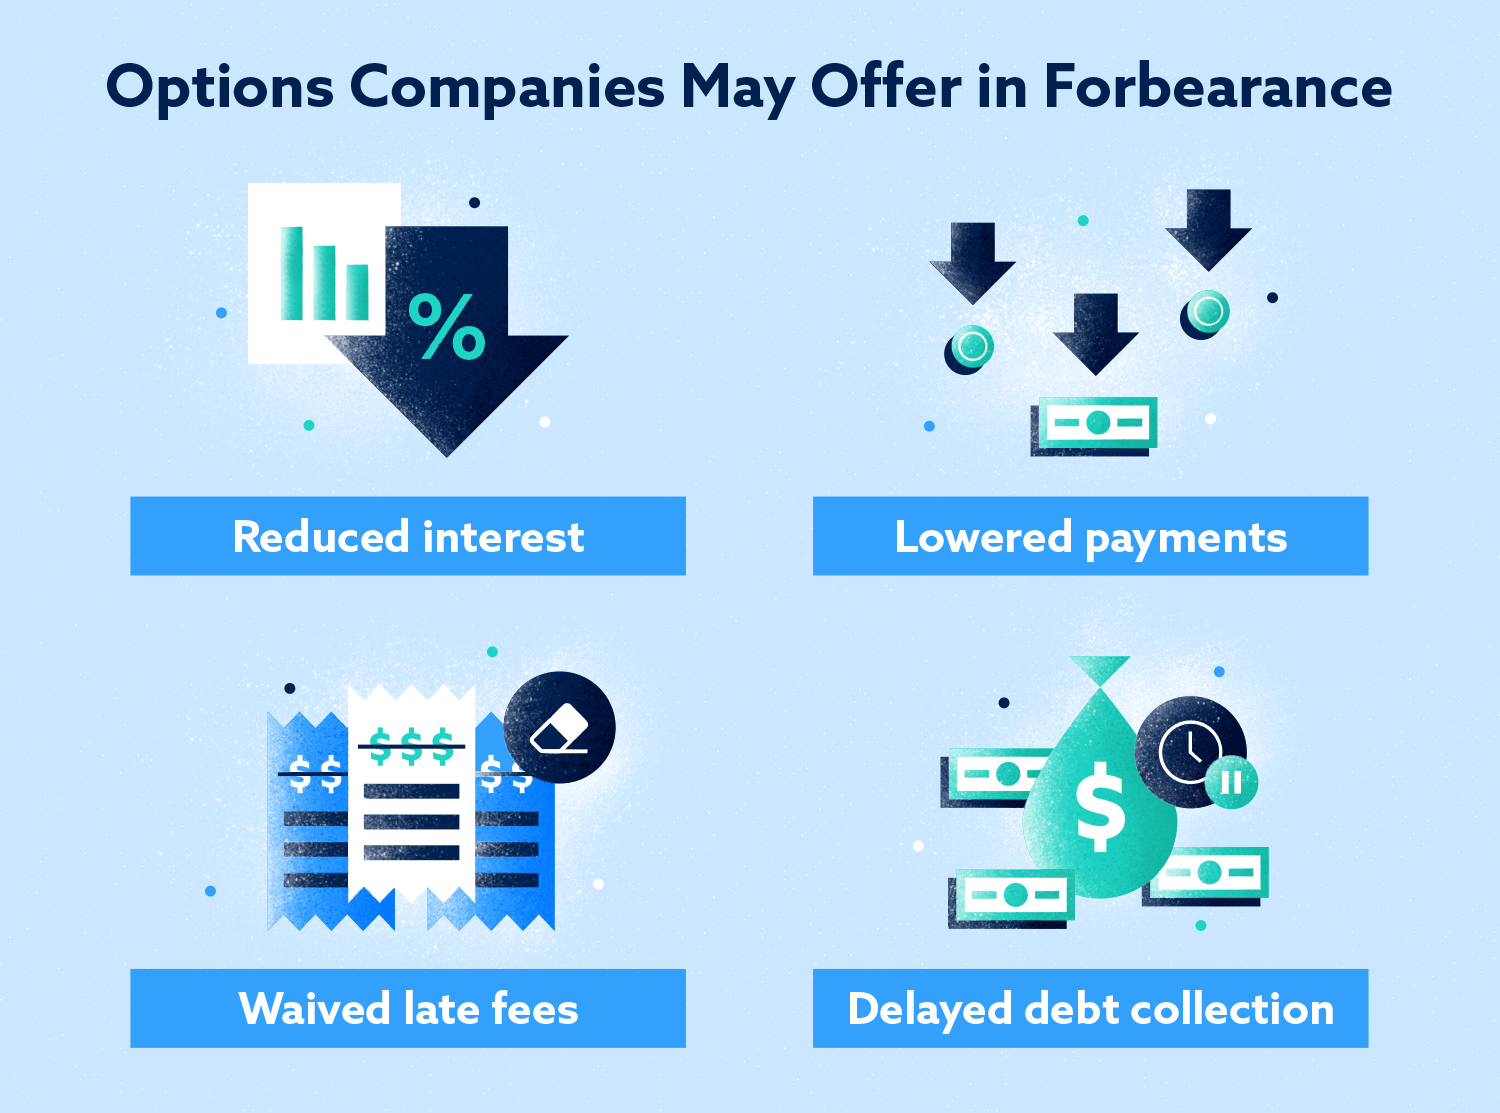 Options Companies May Offer in Forbearance Image